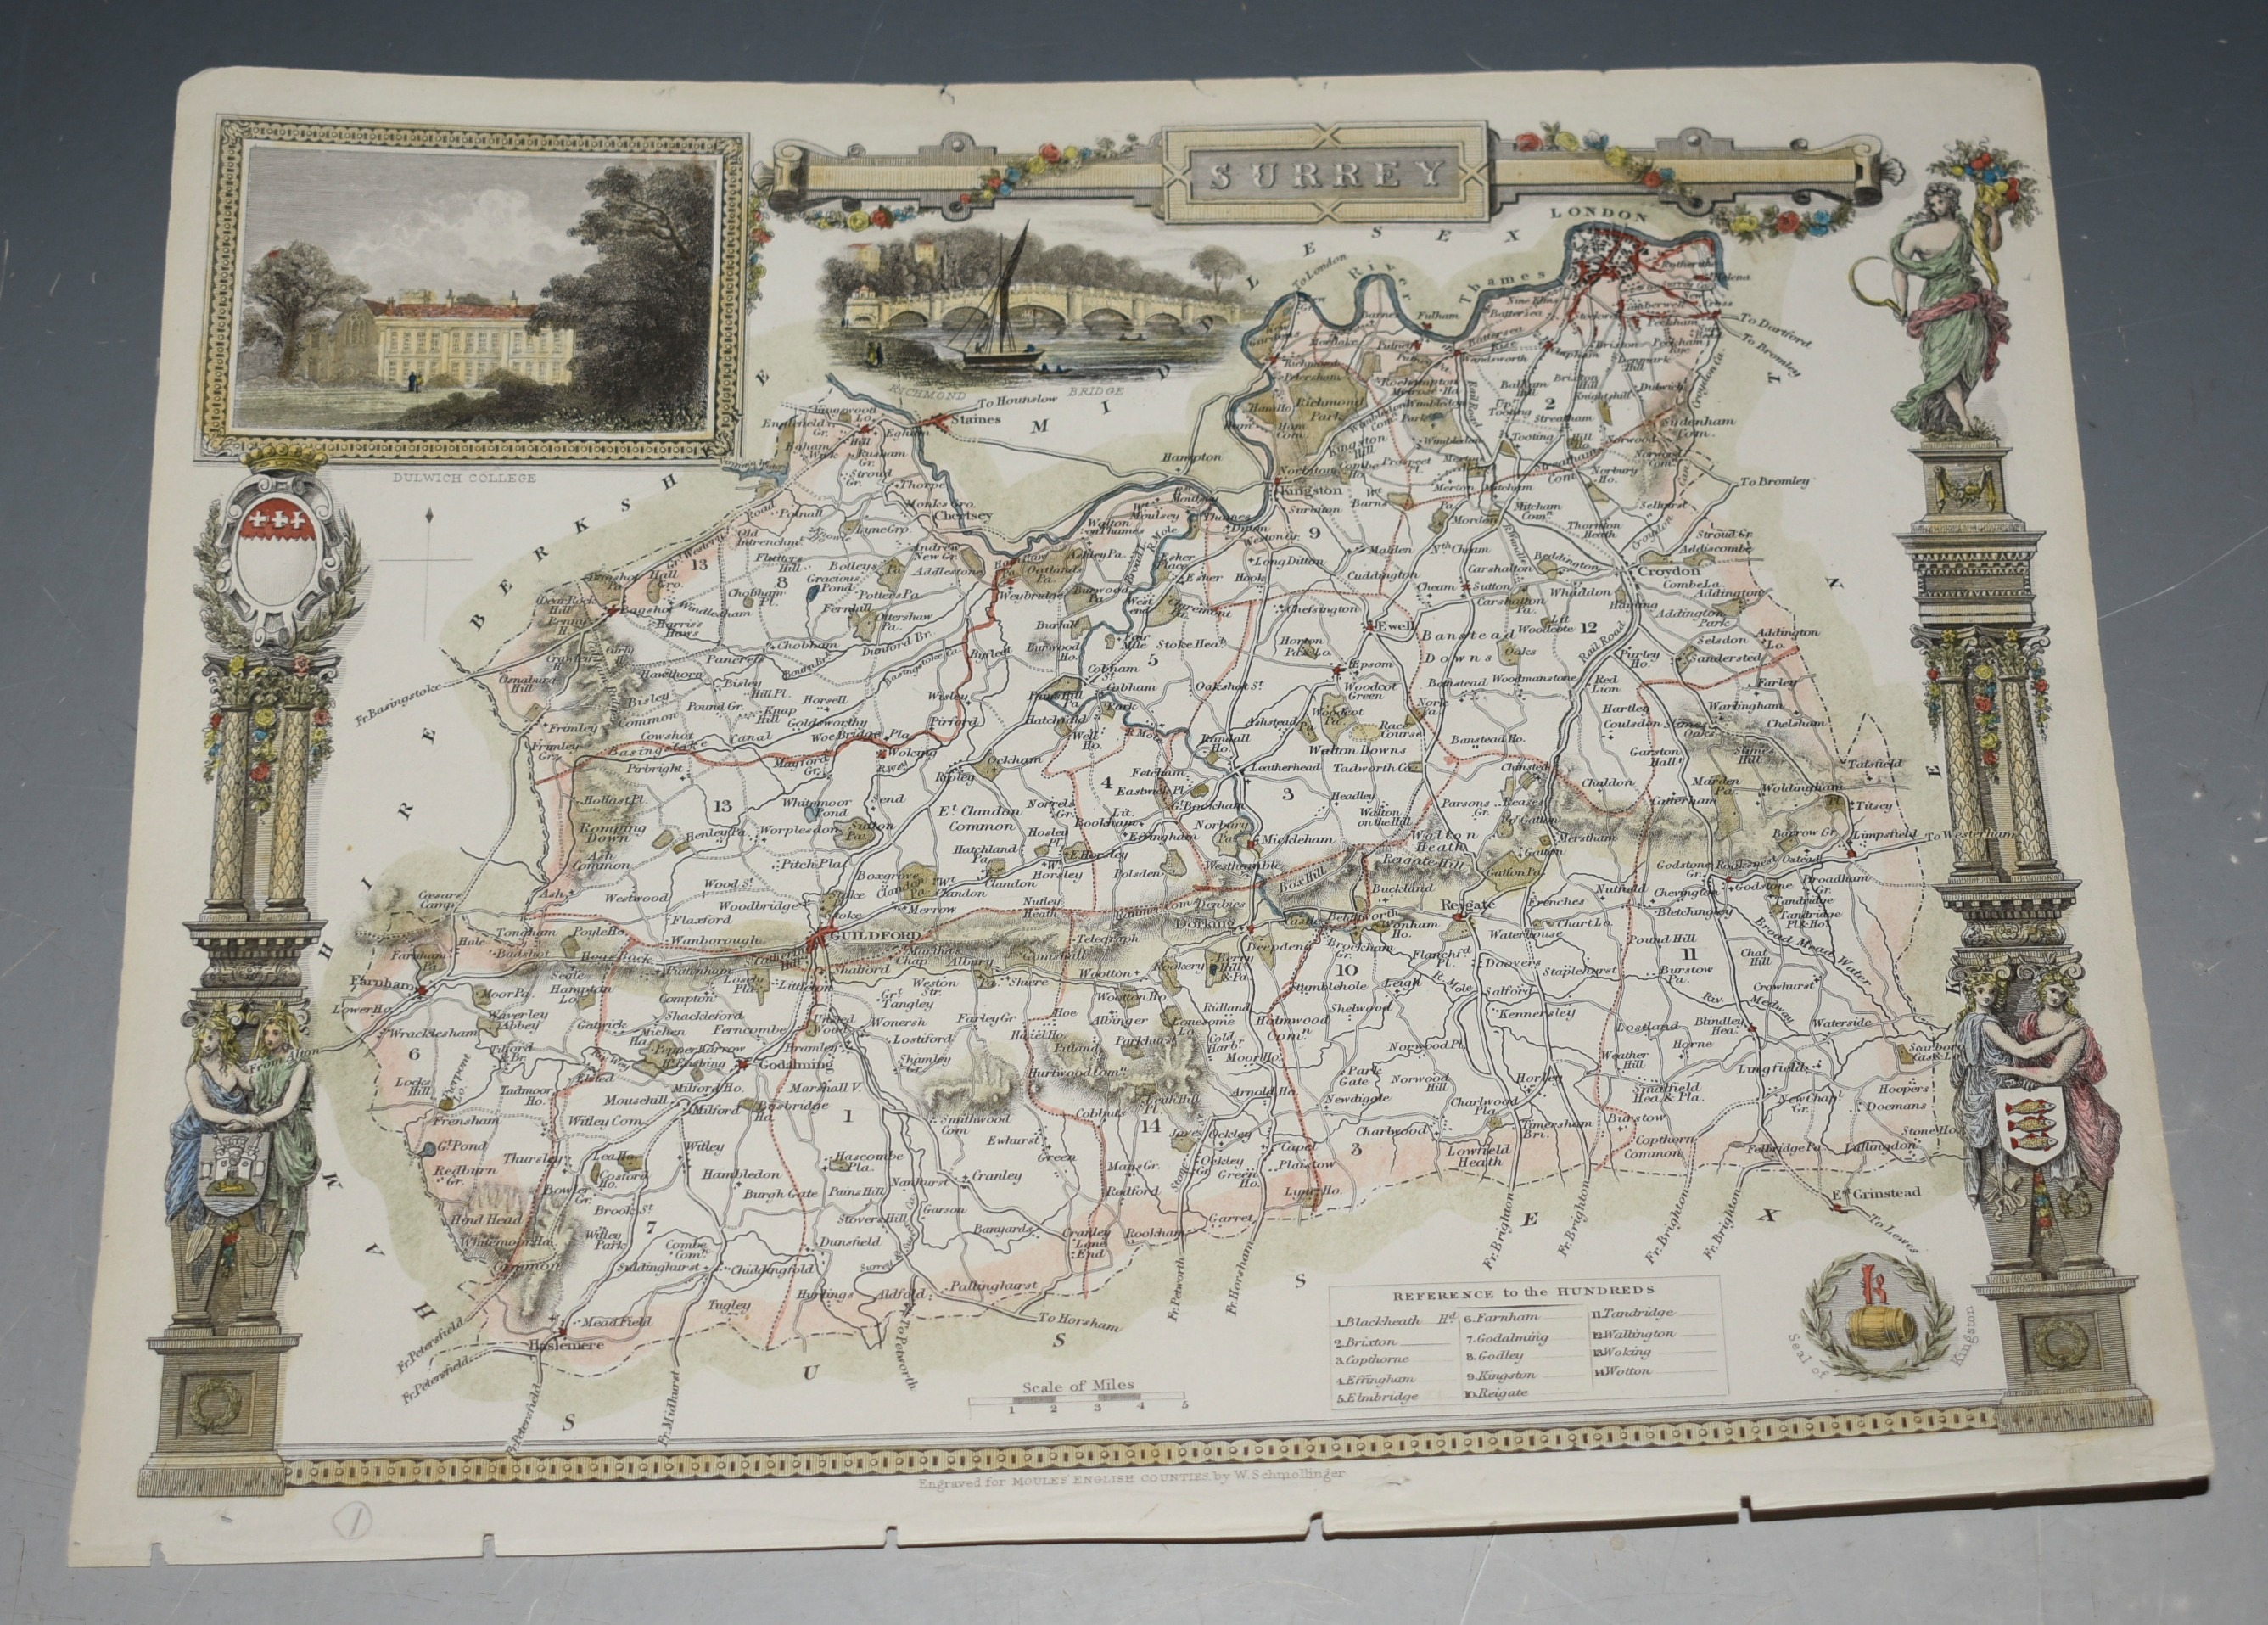 Image for Map of Surrey. Map of Surrey showing towns, villages, roads and railways.